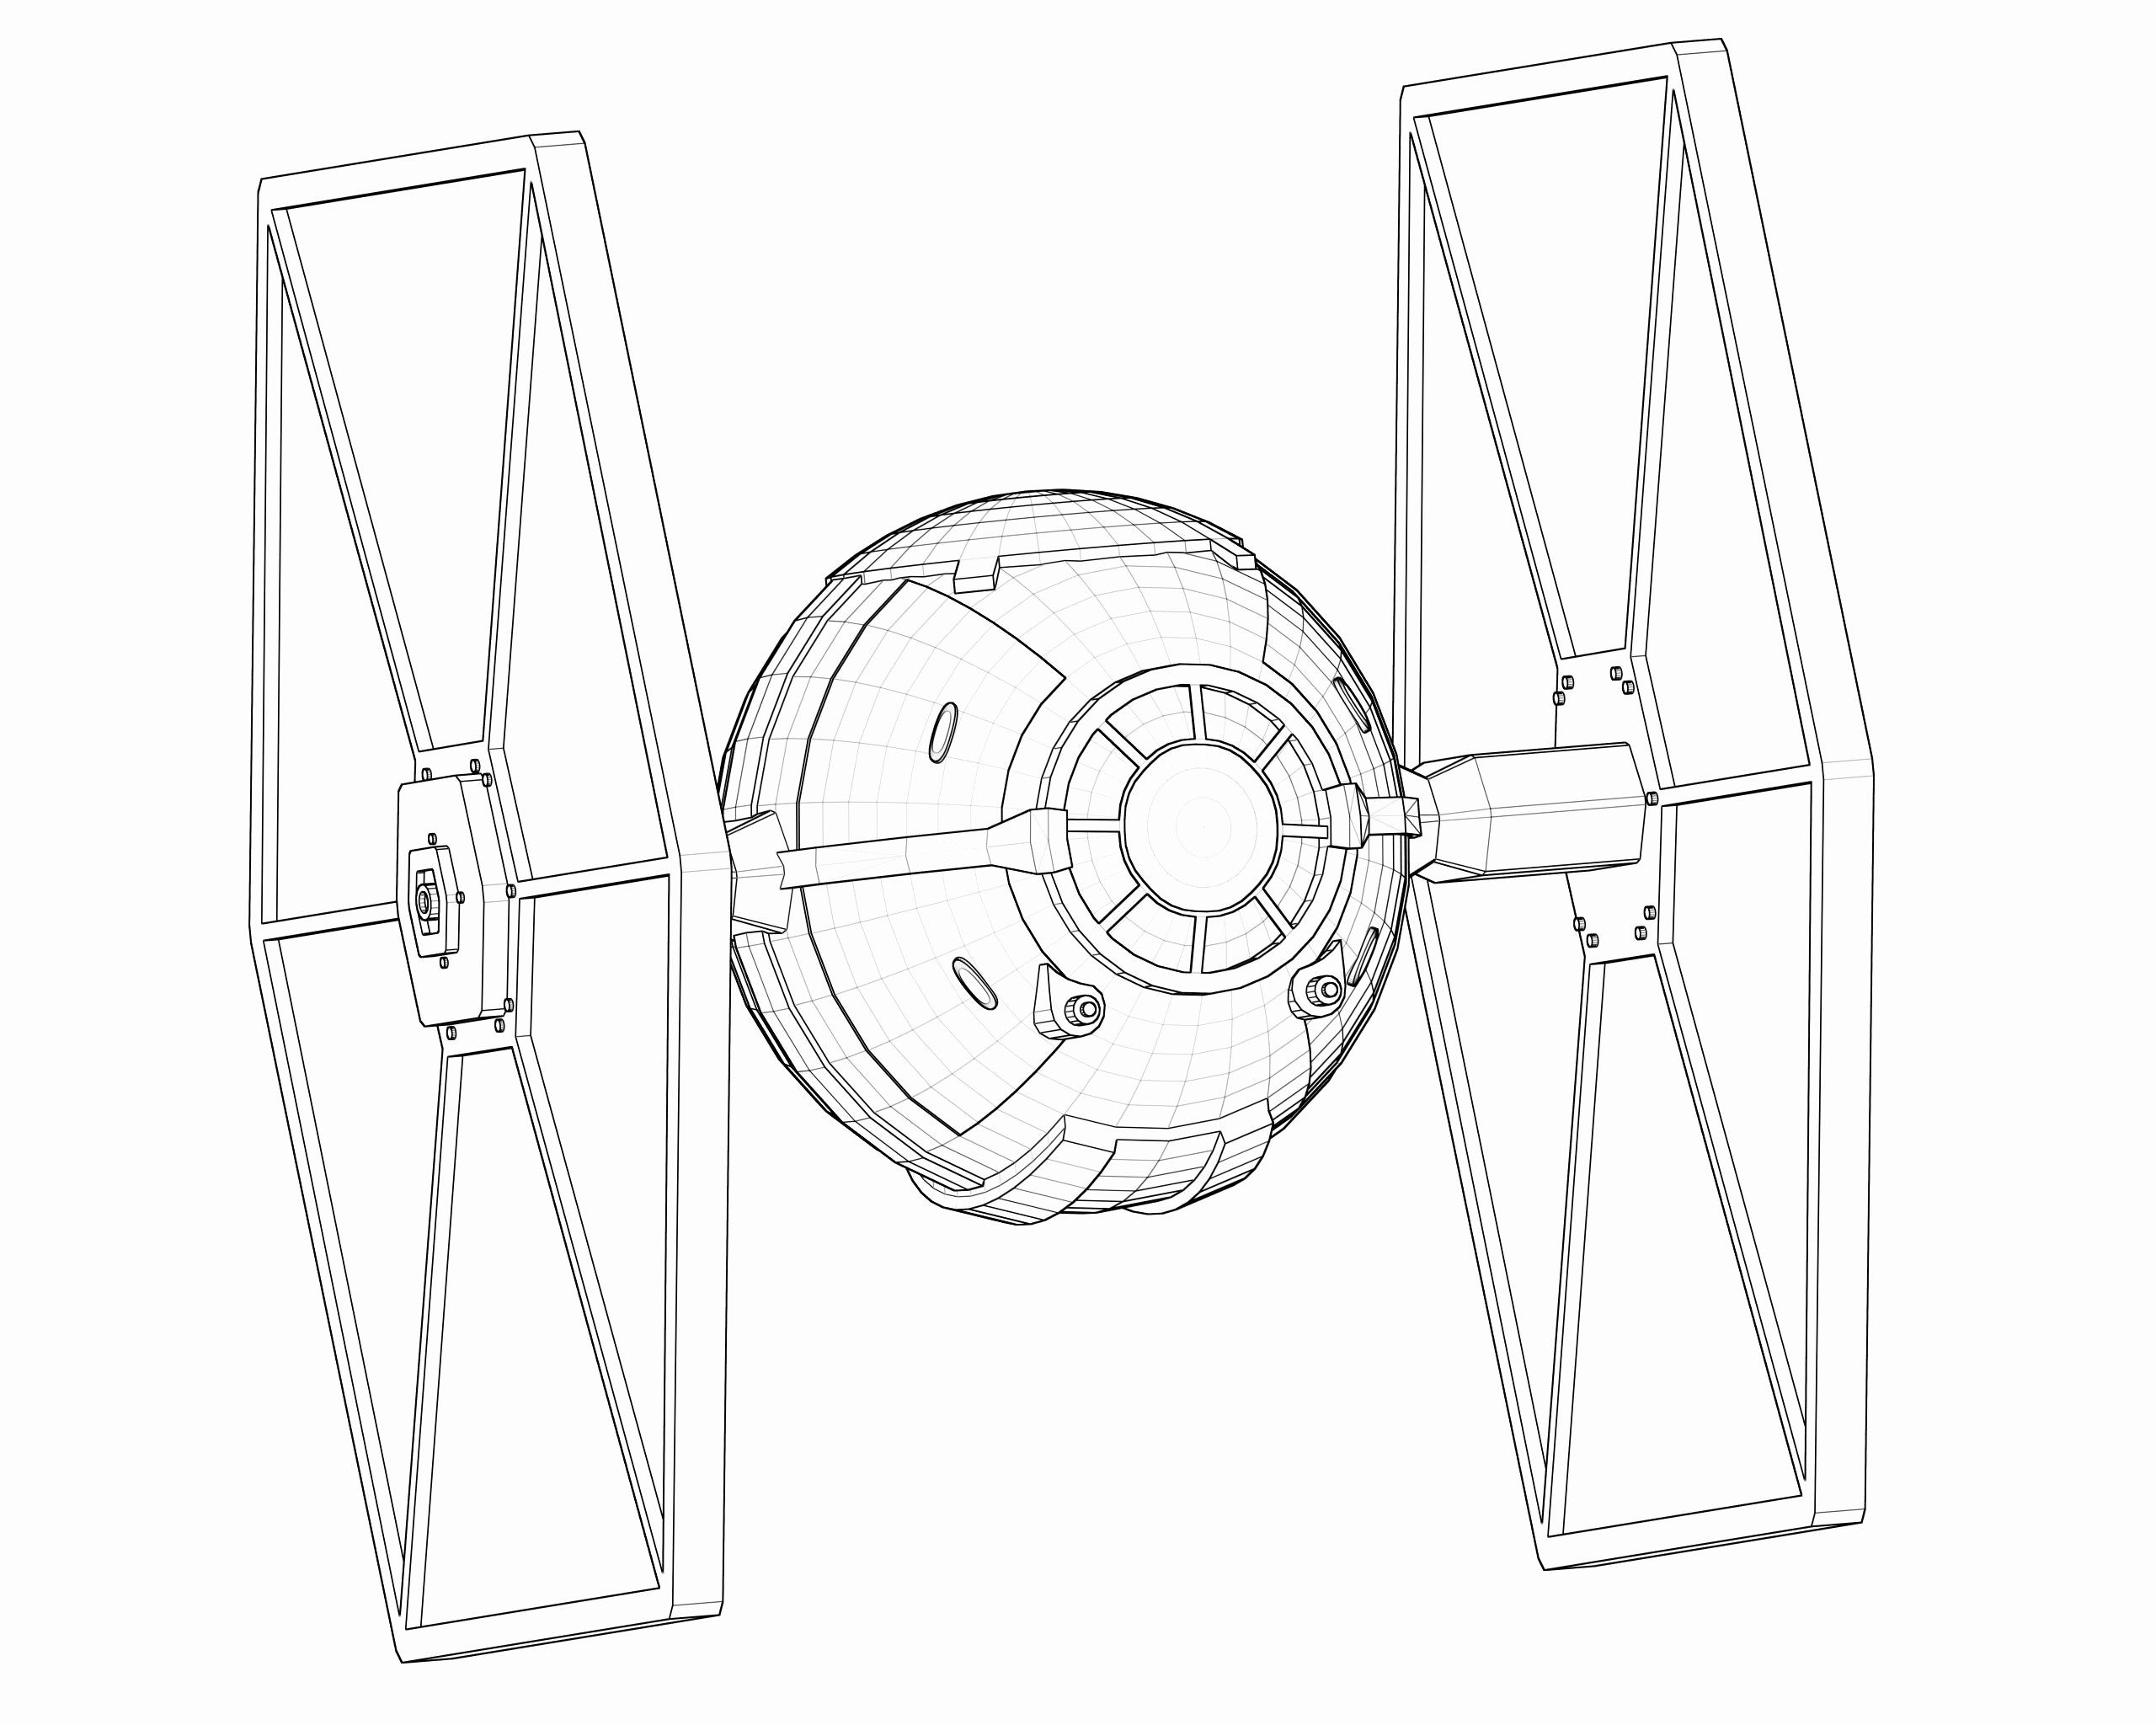 Tie Fighter Coloring Page Beautiful Tie Fighter Drawing Tie Fighter Classroom Decorations Pinterest Star Wars Coloring Book Tie Fighter Star Wars Drawings